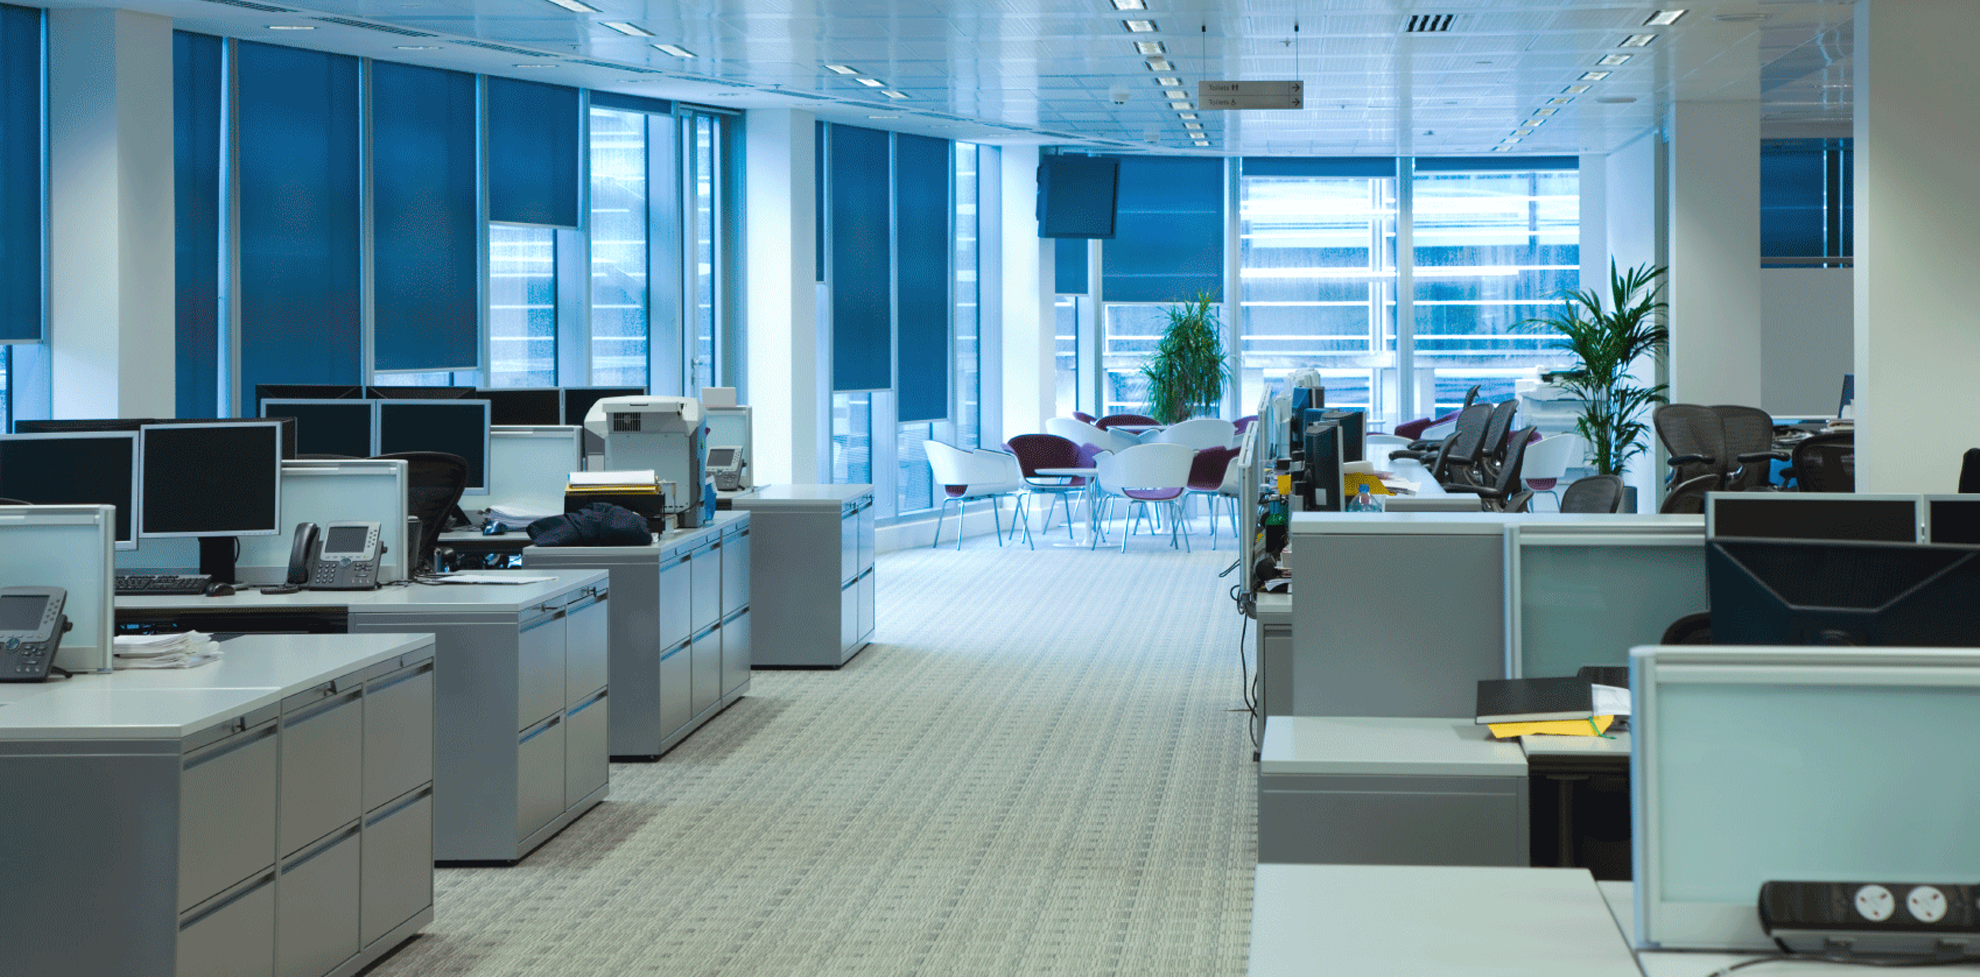 business cleaning and office cleaning services can increase